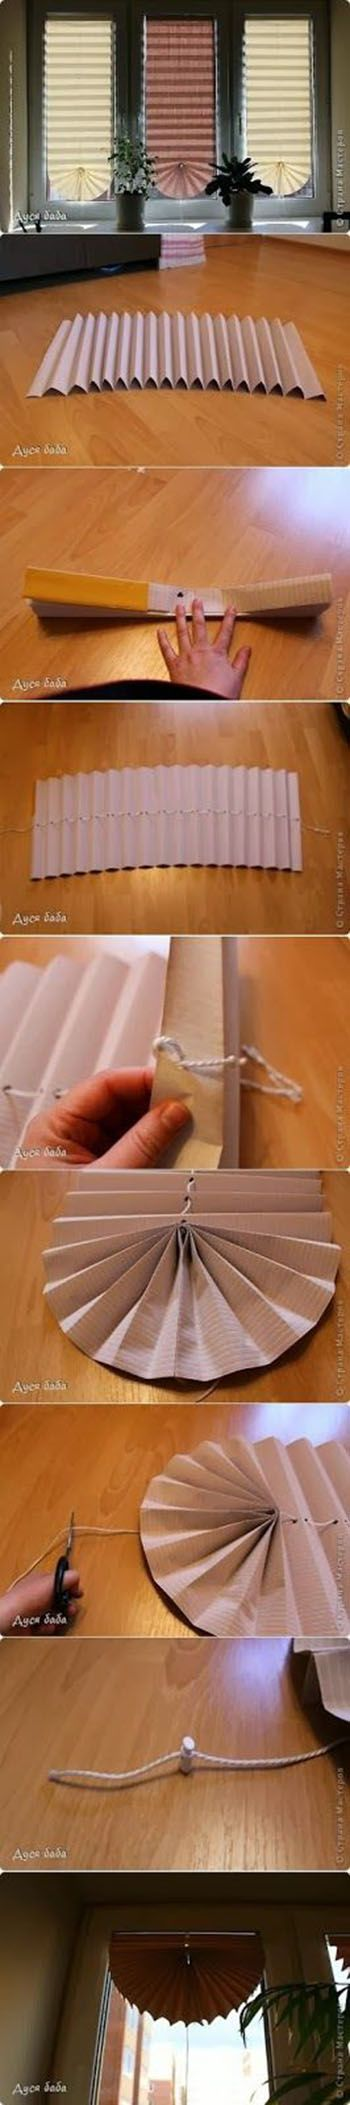 So Cool Decoration | DIY & Crafts Tutorials